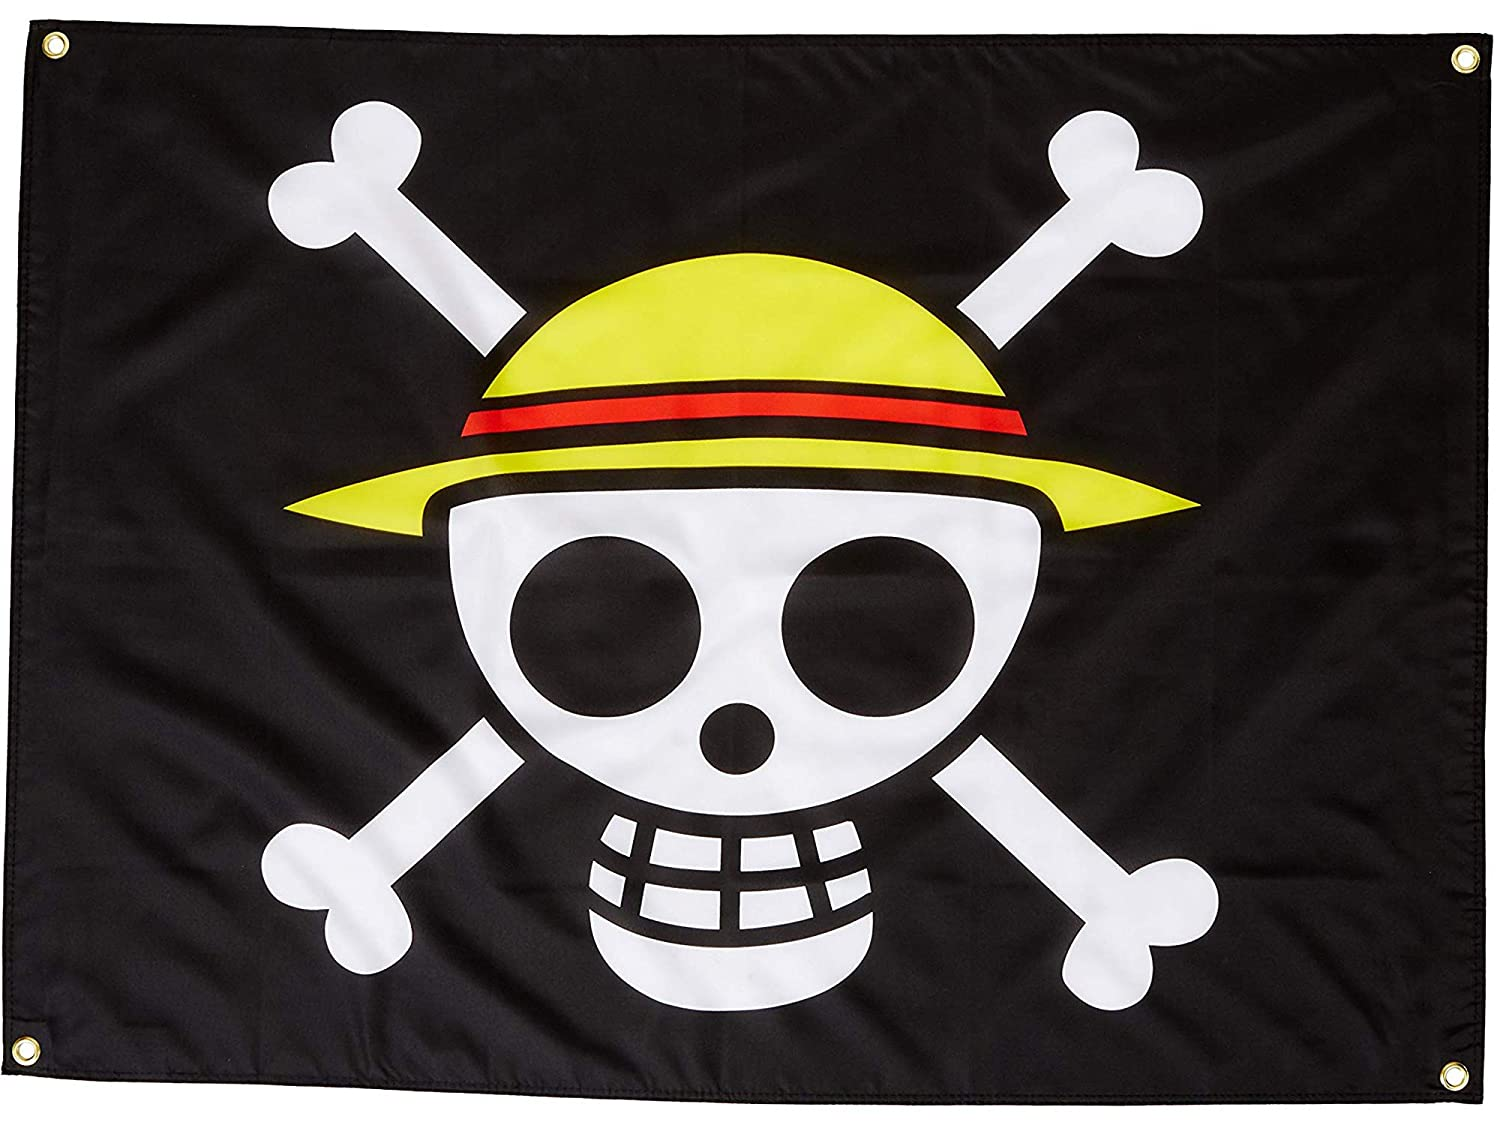 3ed1128d1c7 Amazon.com: Home Decor Animation GE-6468 One Piece Luffy's Straw Hat Pirate  Flag: Home & Kitchen